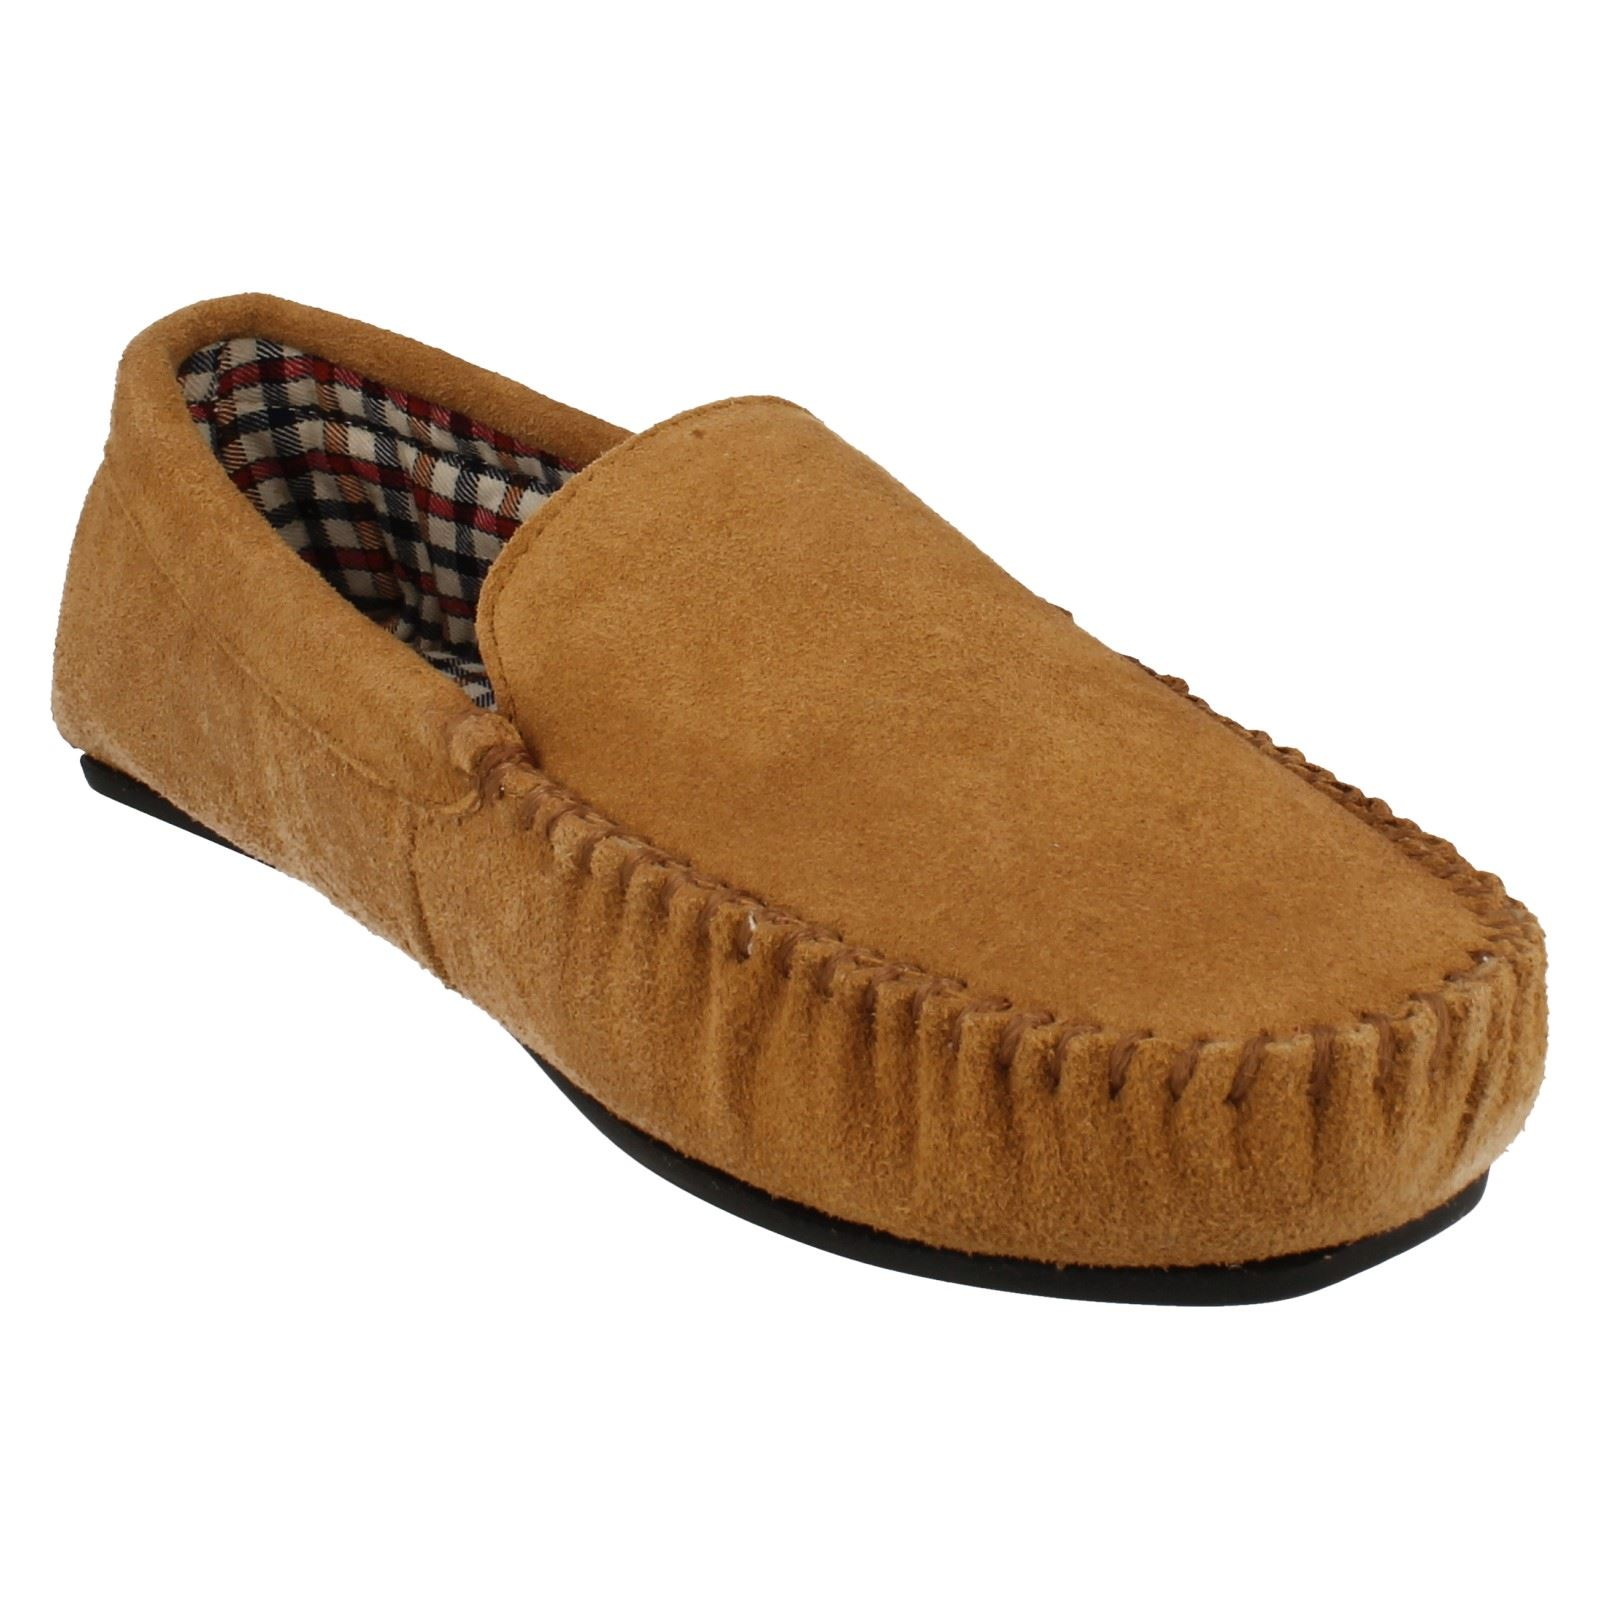 Clarks ' Kite Jetway' Mens Moccasin Slippers